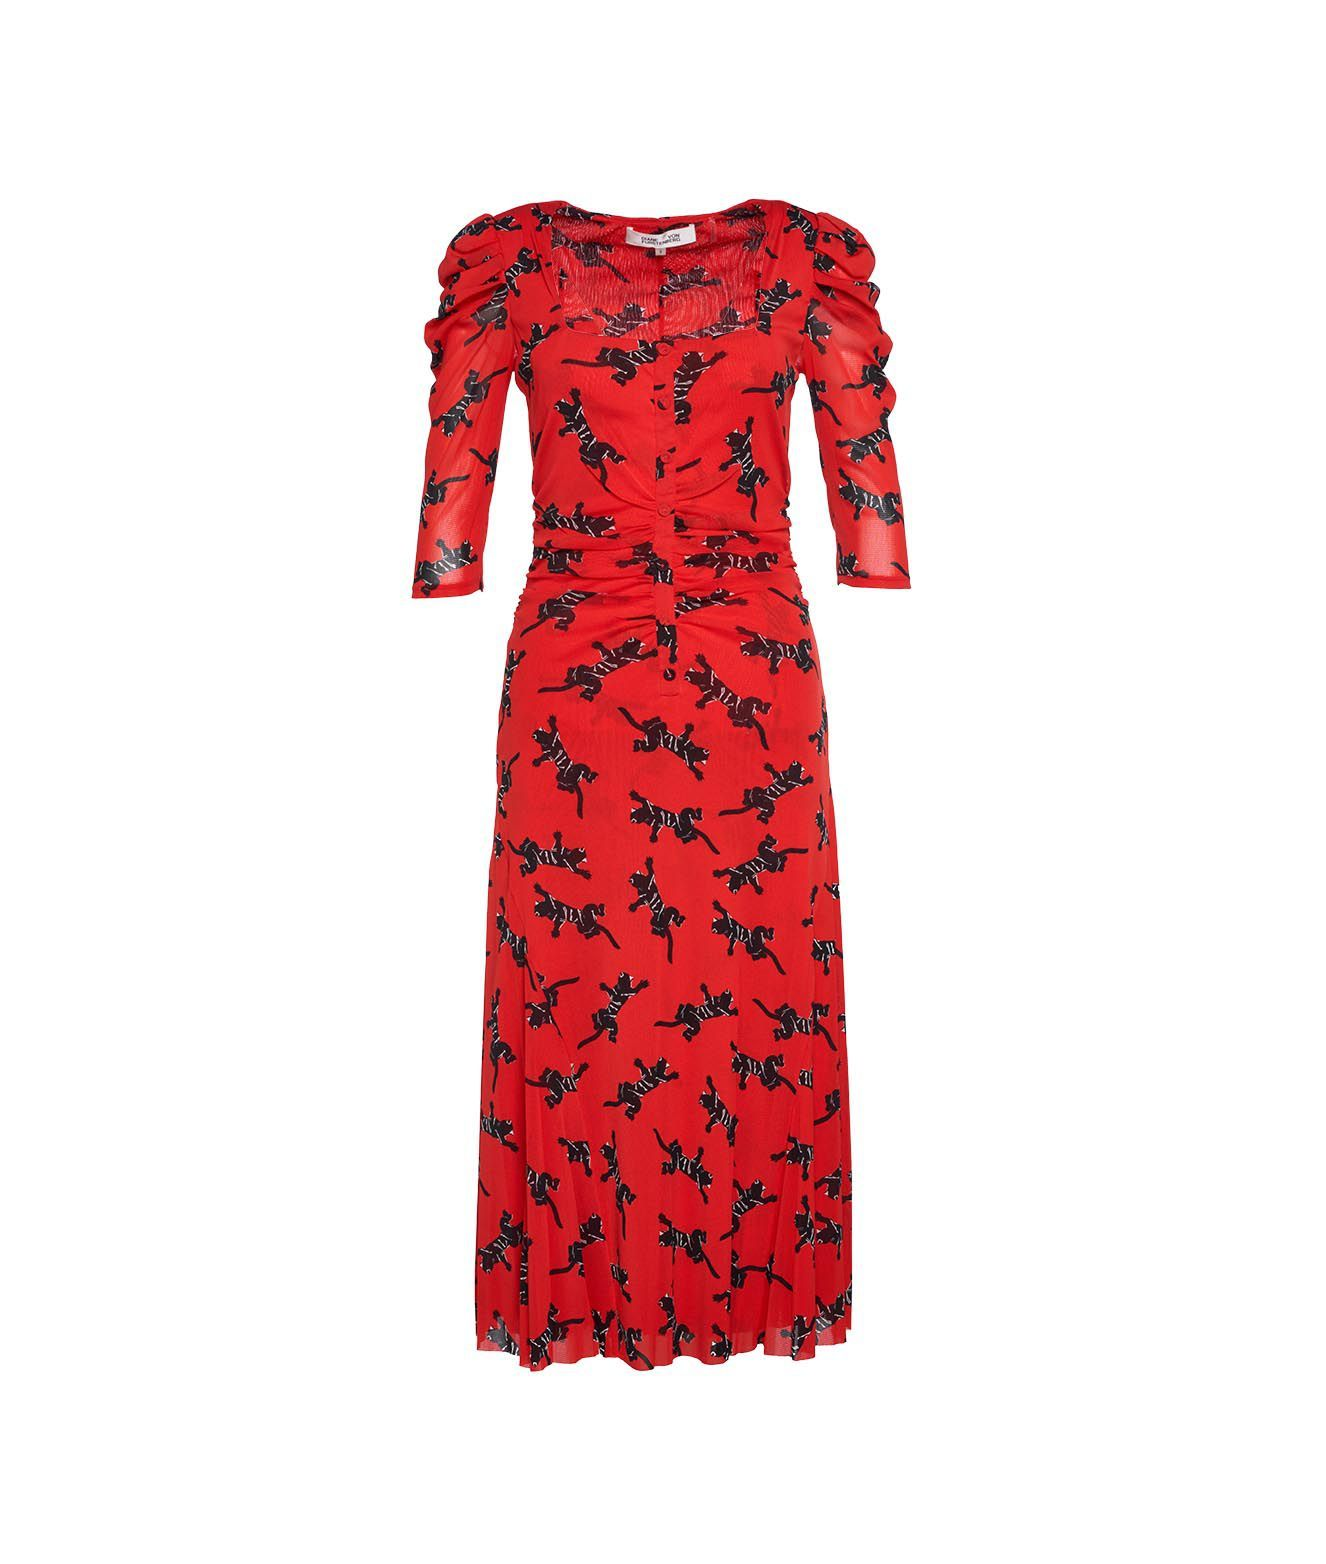 Diane Von Furstenberg DIANE VON FURSTENBERG WOMEN'S DVFDL4O03311CPSRD RED OTHER MATERIALS DRESS